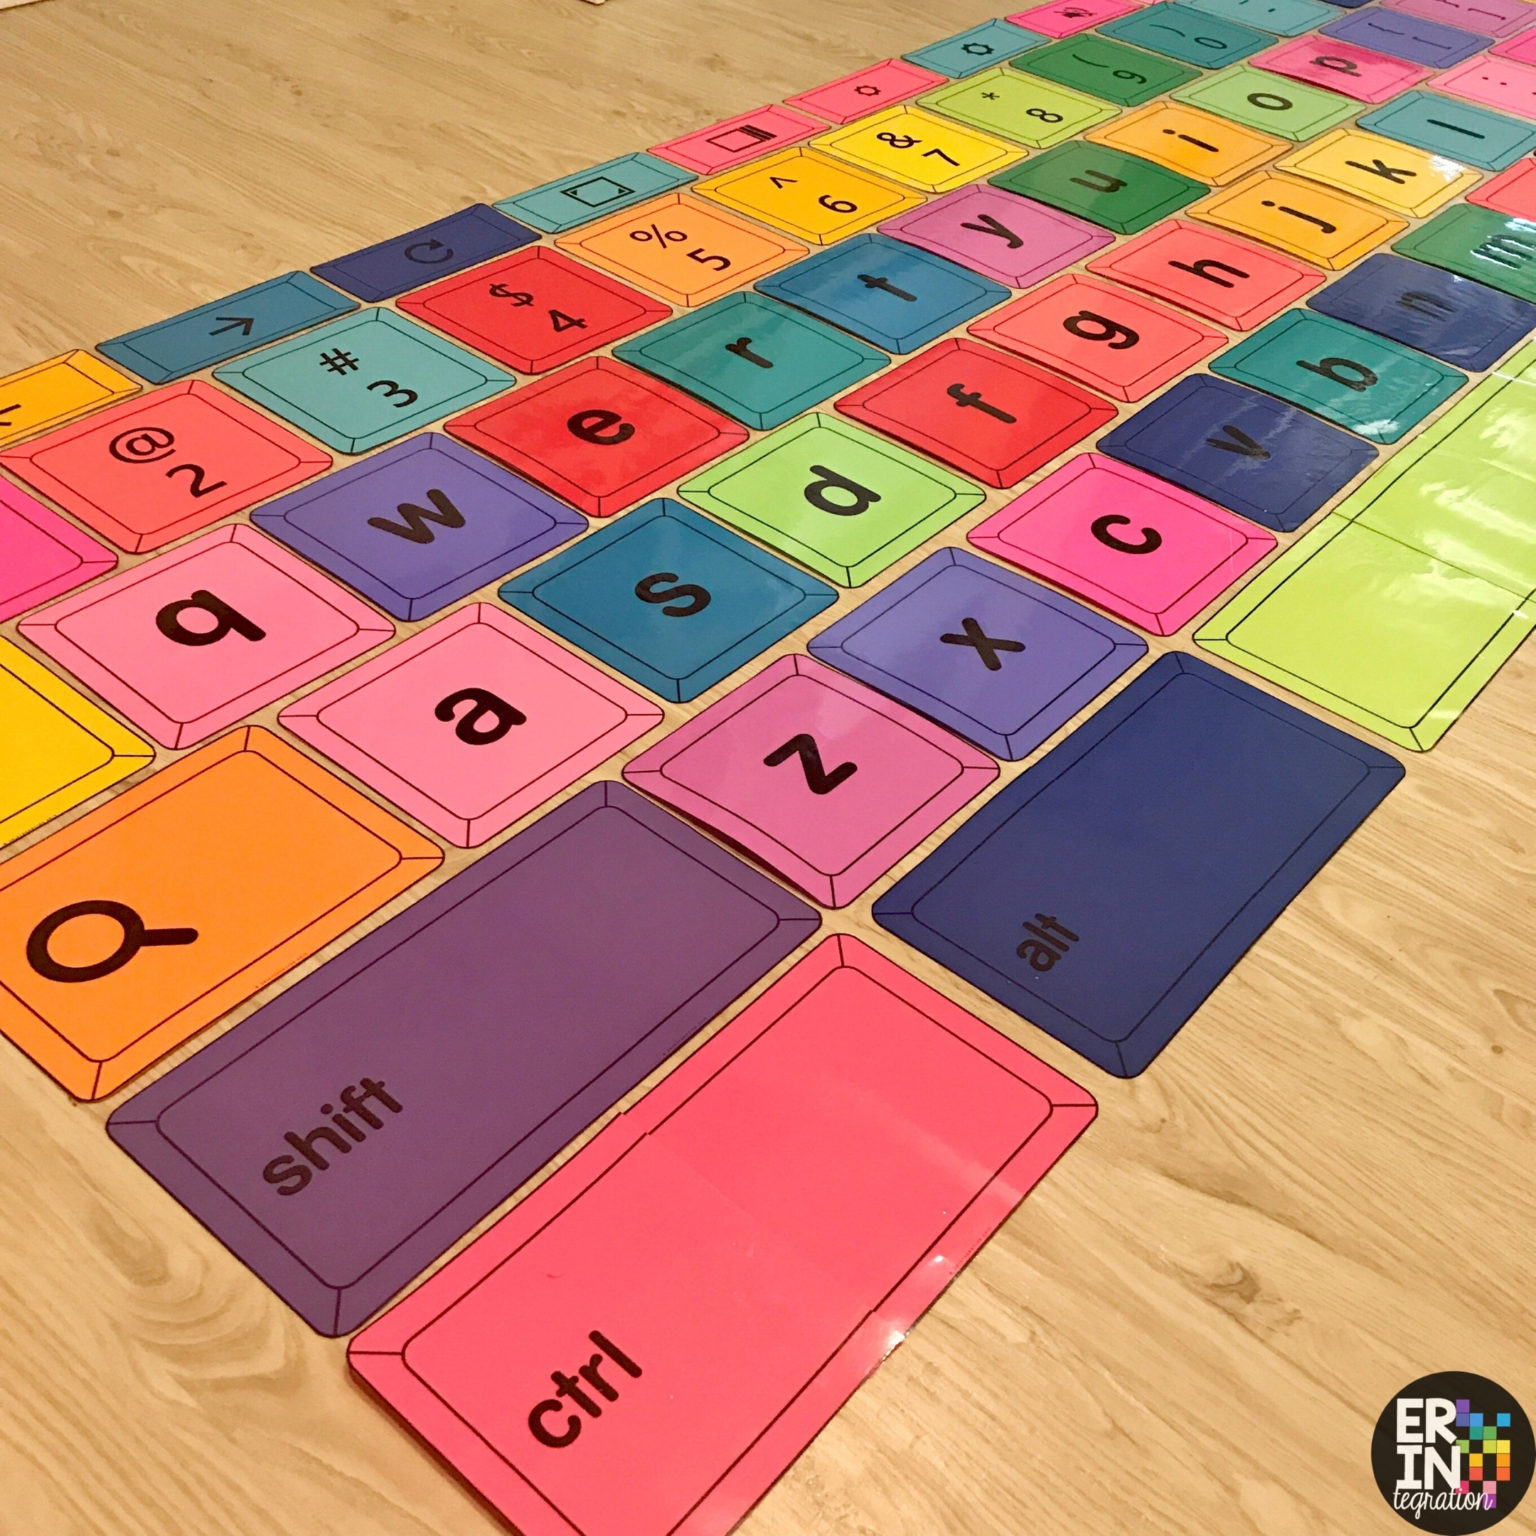 large printable Chromebook Keyboard laid out on classroom floor